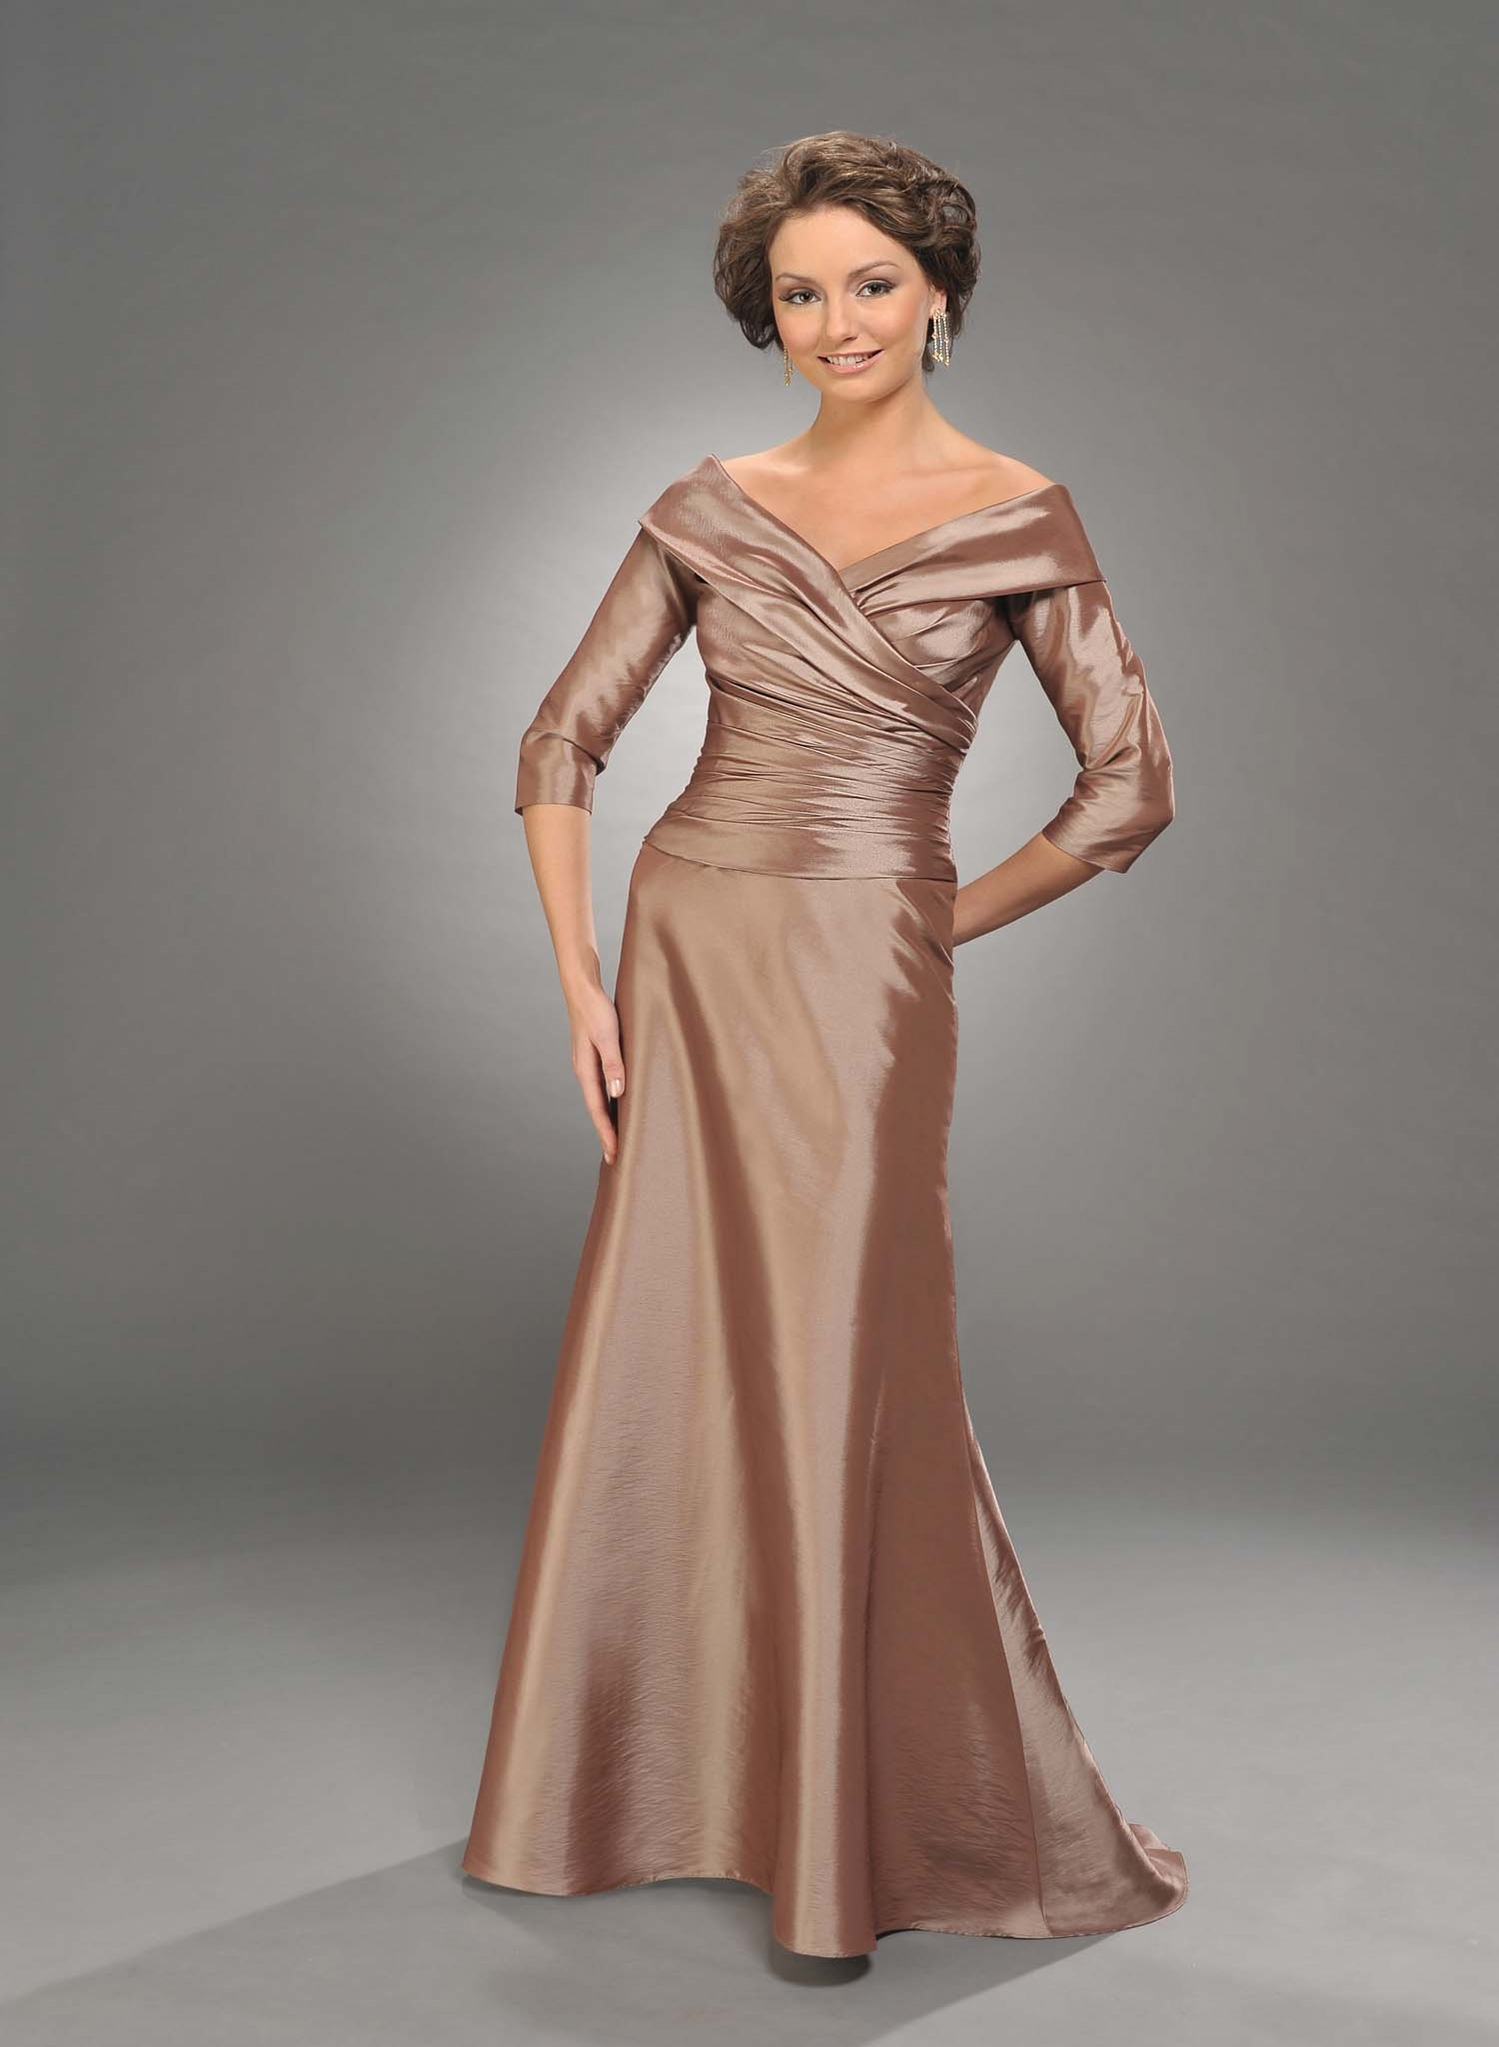 45412a47ed1b Champagne a Line V Neck Half Sleeves Full Length Mother of Bride Dresses  With Drapes